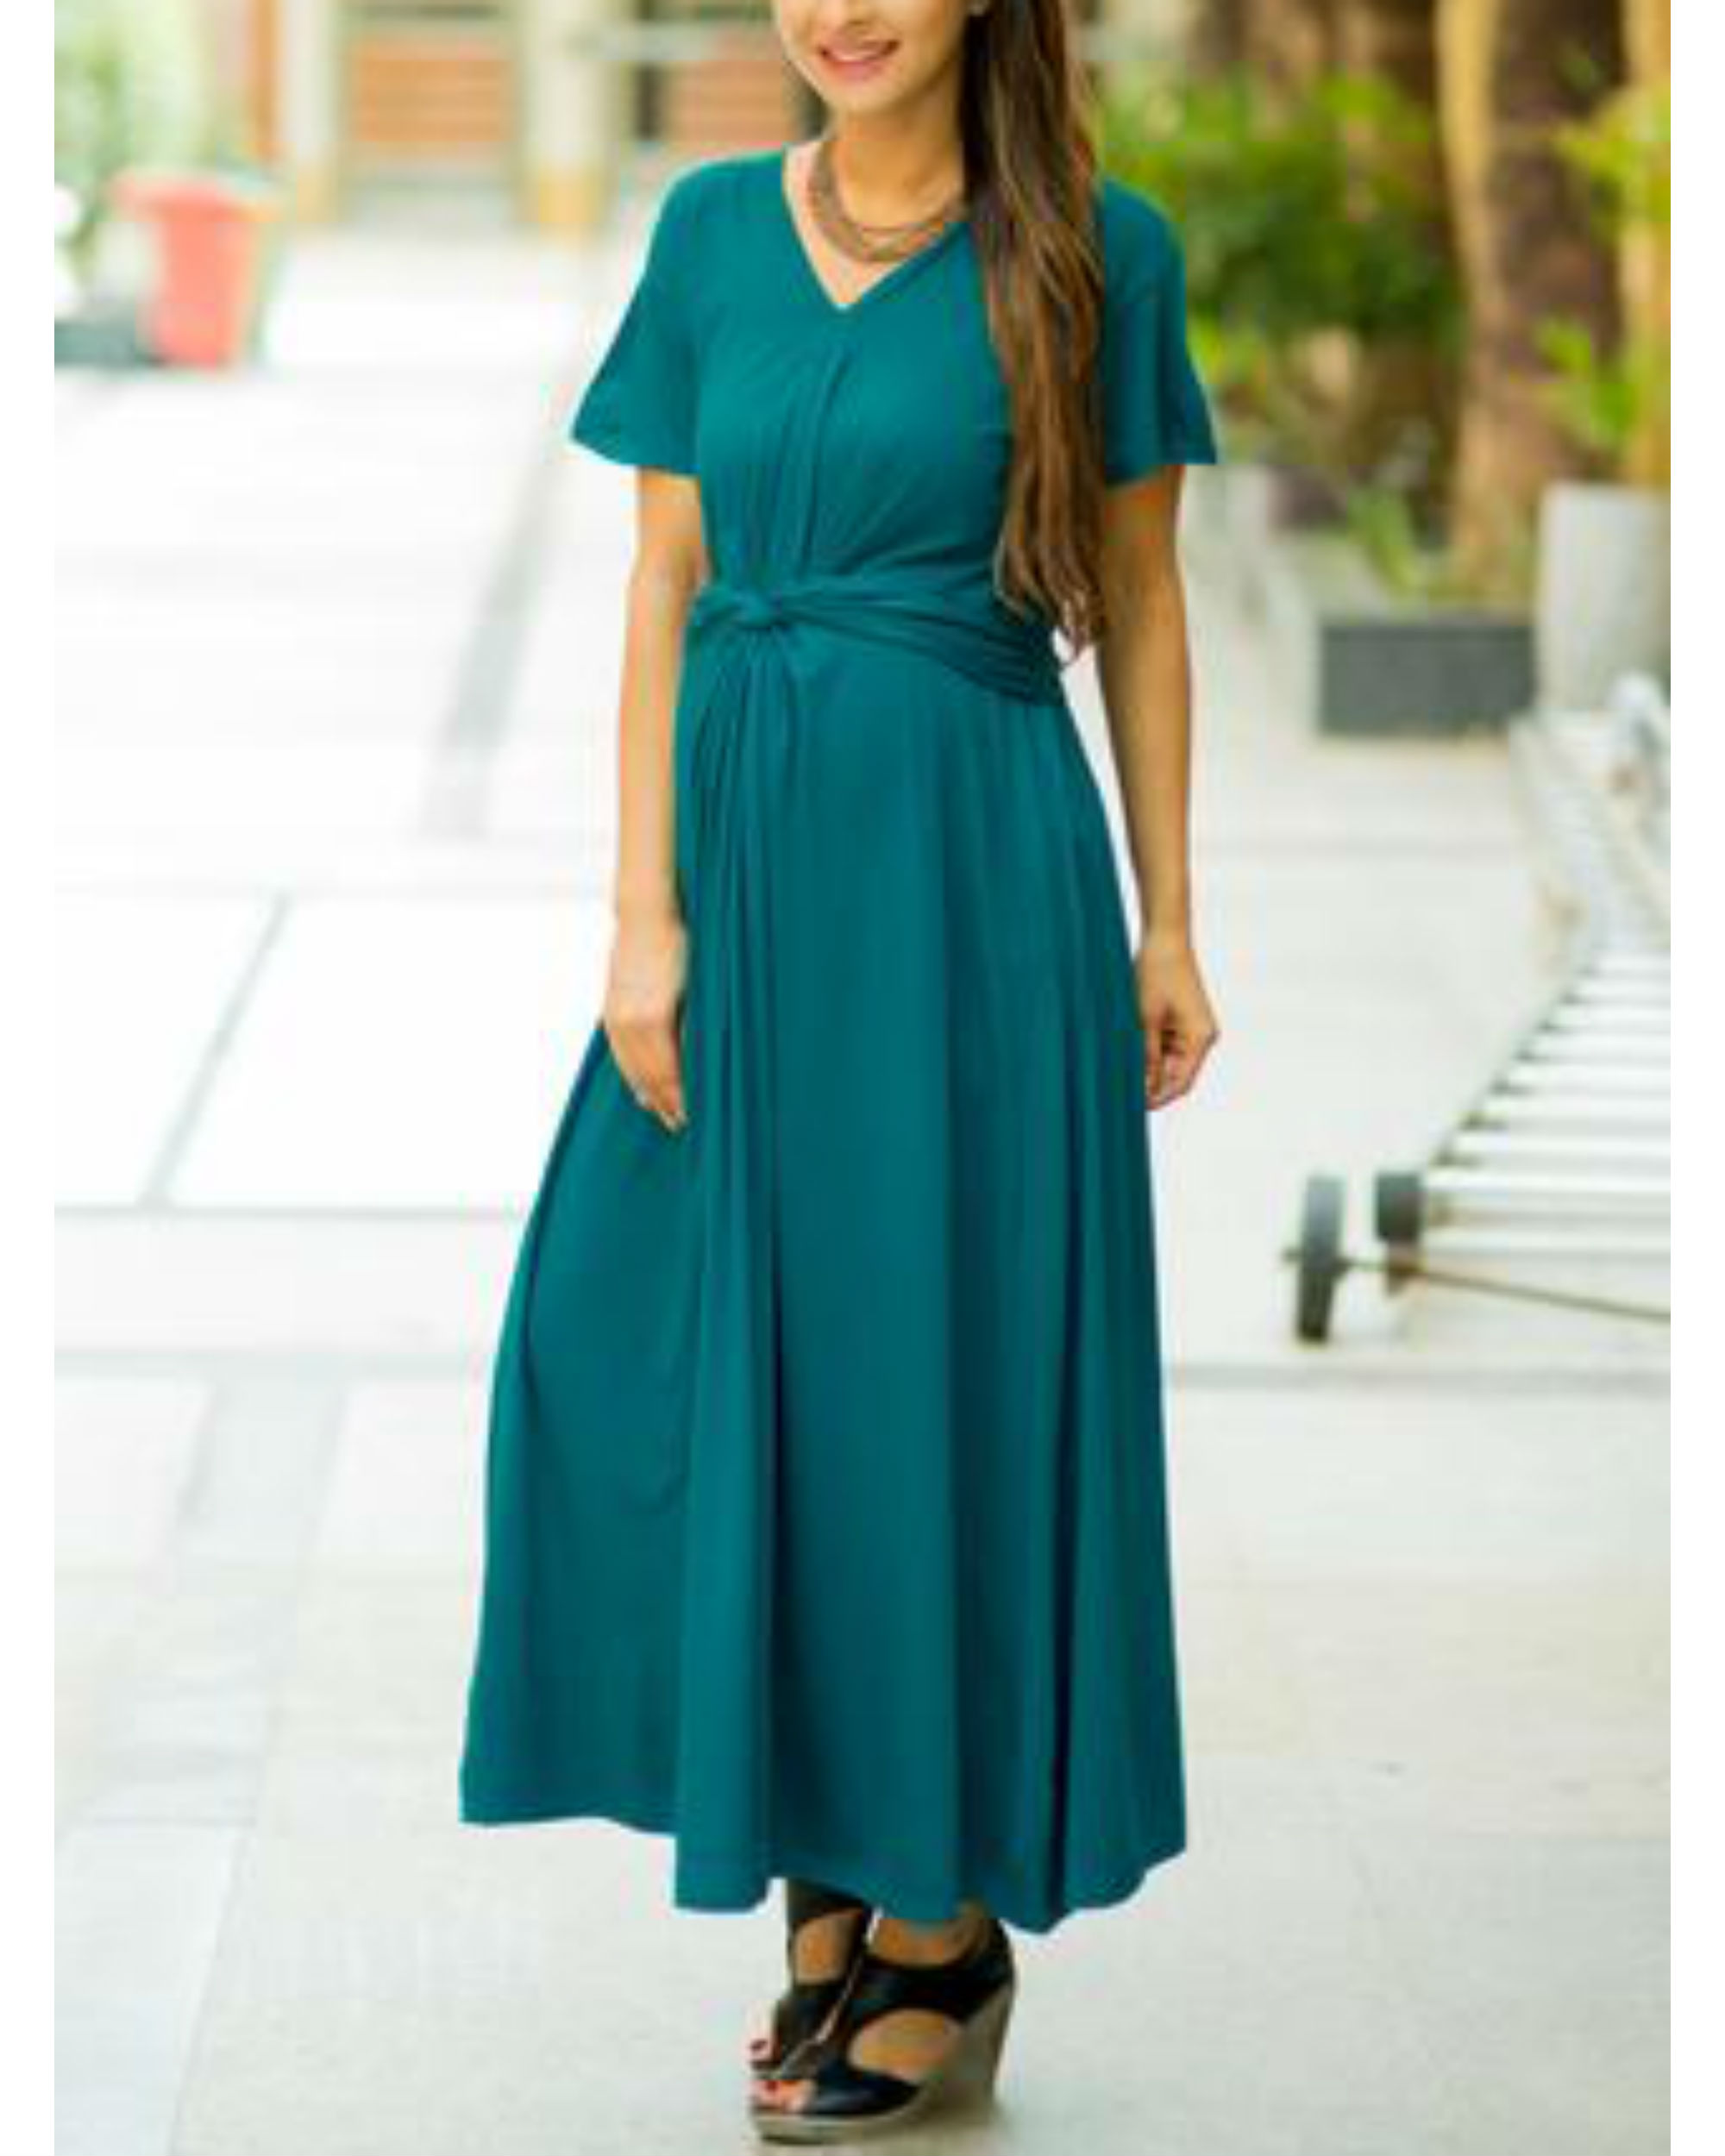 d52495eae39 Emerald front knot lycra maternity dress by MOMZJOY